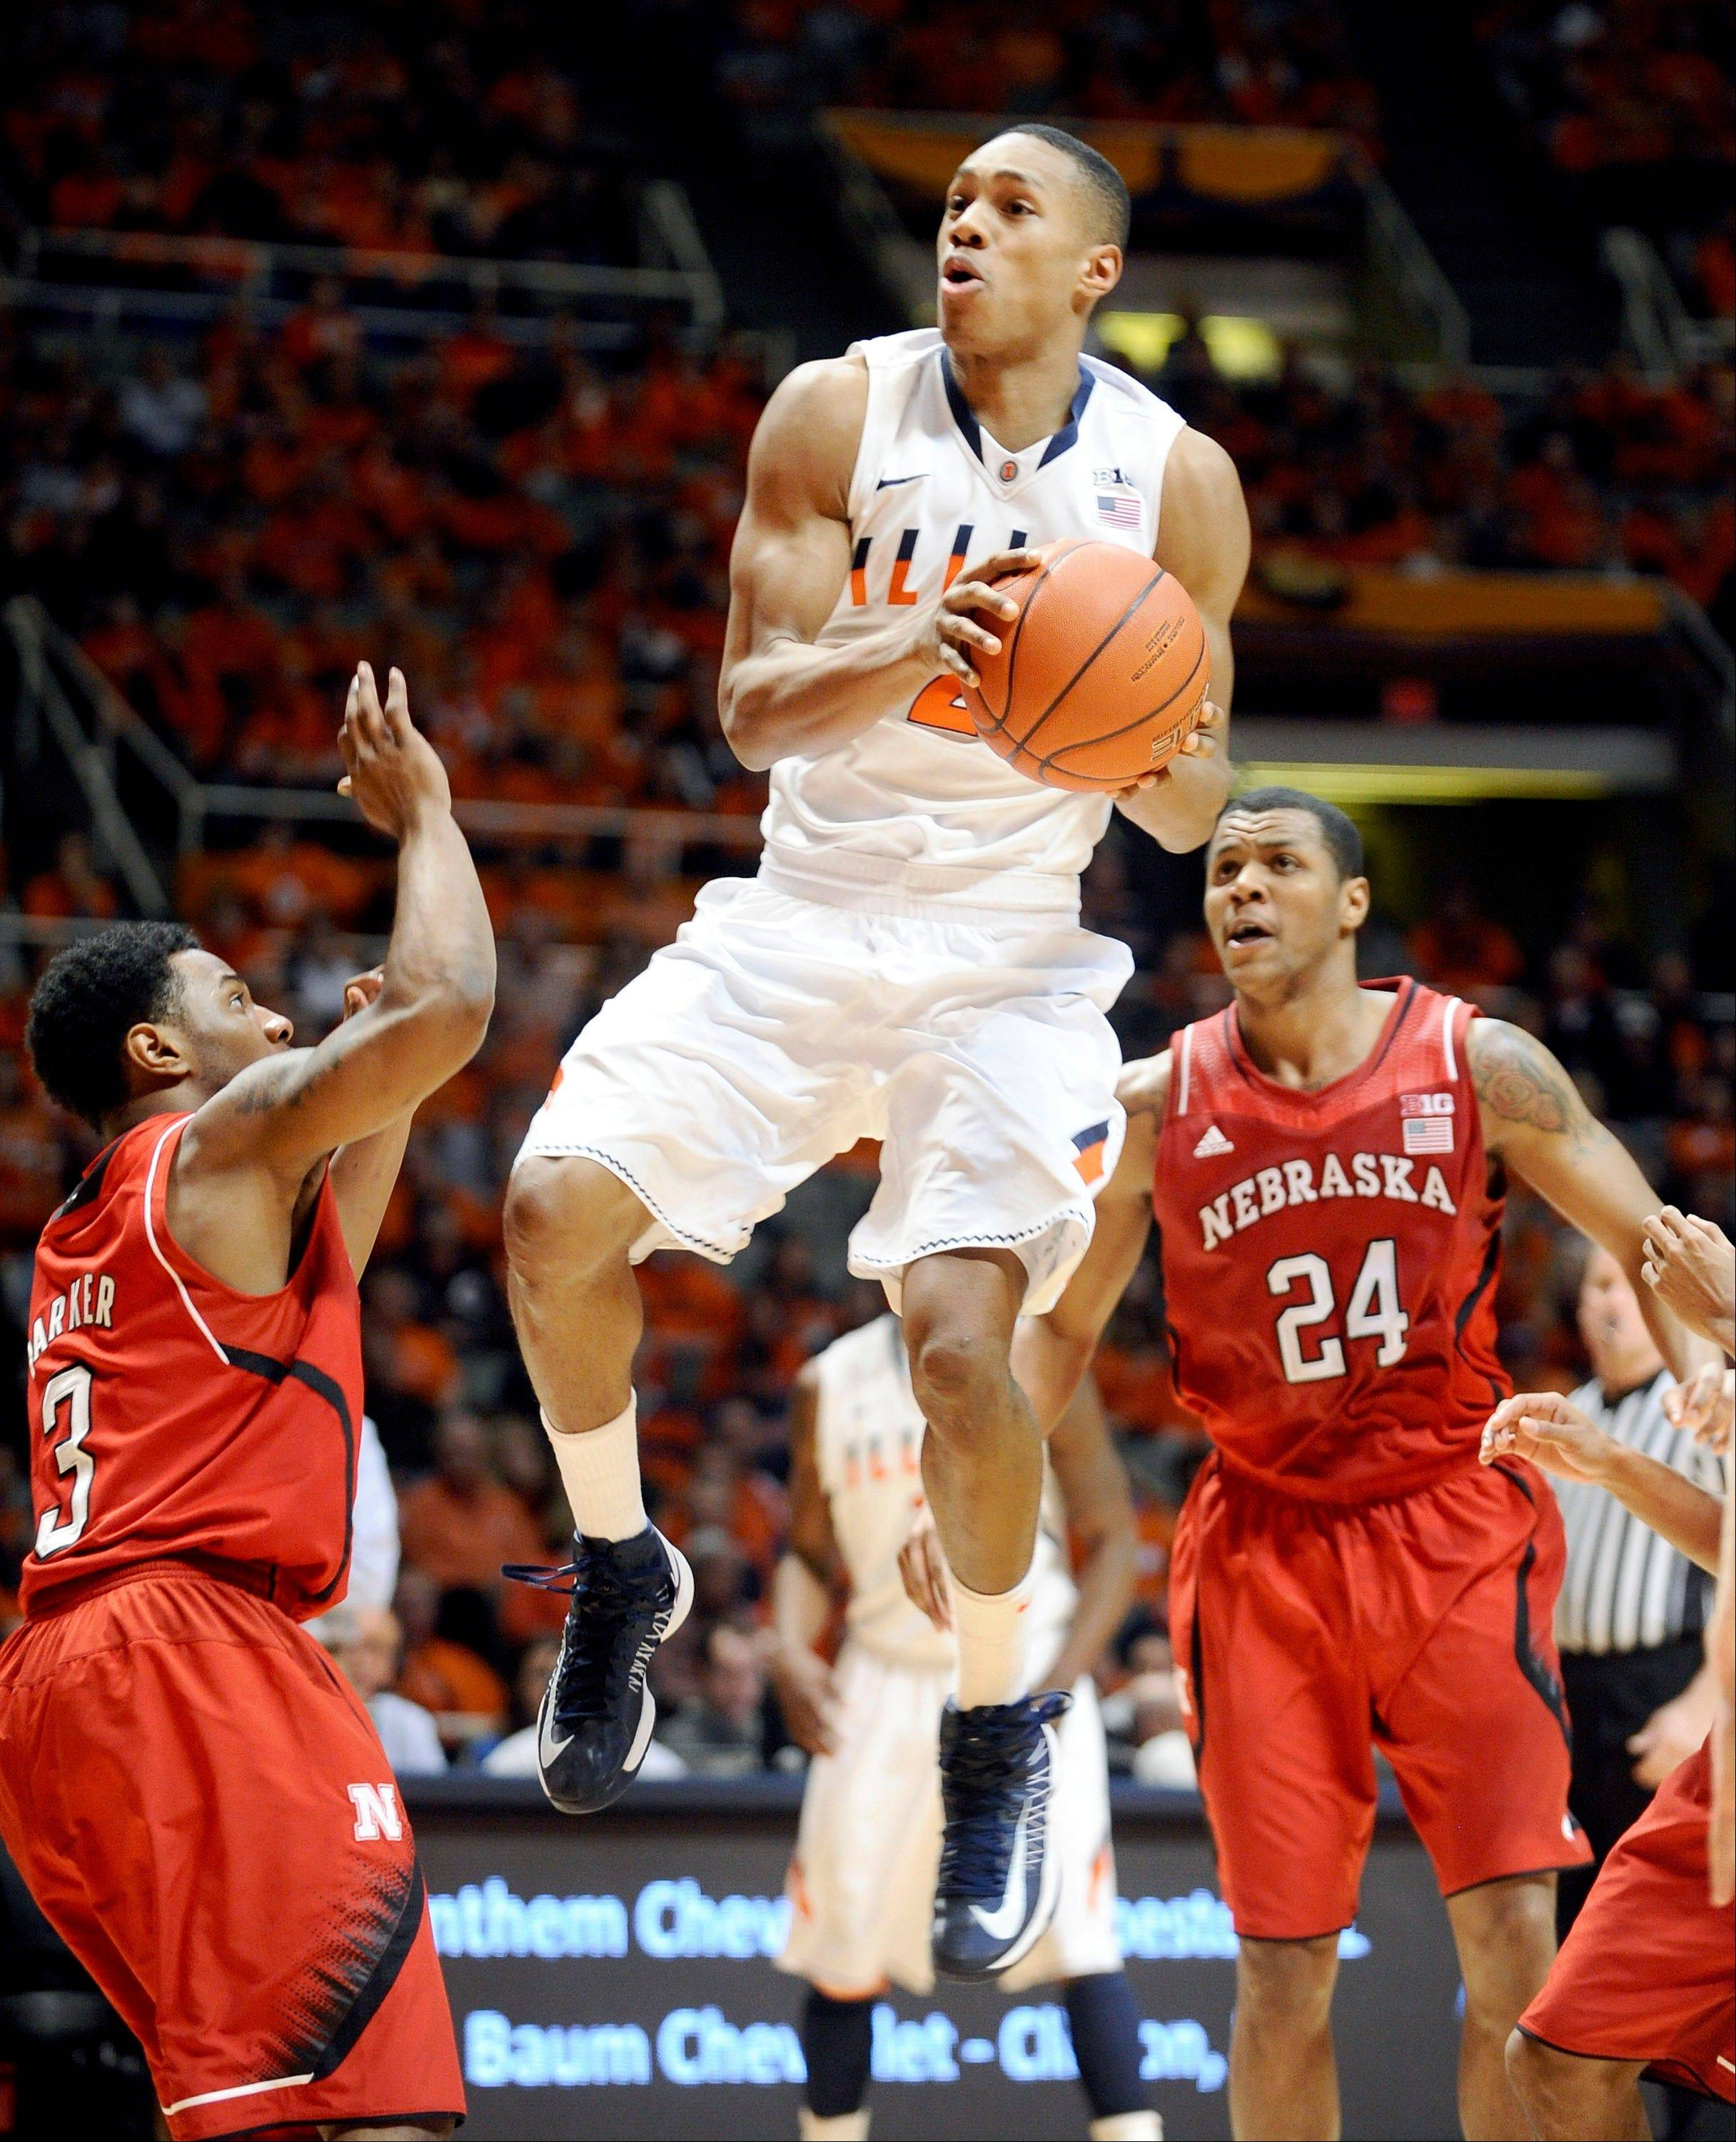 Illinois' Joseph Bertrand (2) tries to go up for a basket against Nebraska's Benny Parker (3) and Dylan Talley (24) during the first half of an NCAA college basketball game in Champaign, Ill., on Saturday, March 2, 2013. (AP Photo/Heather Coit)